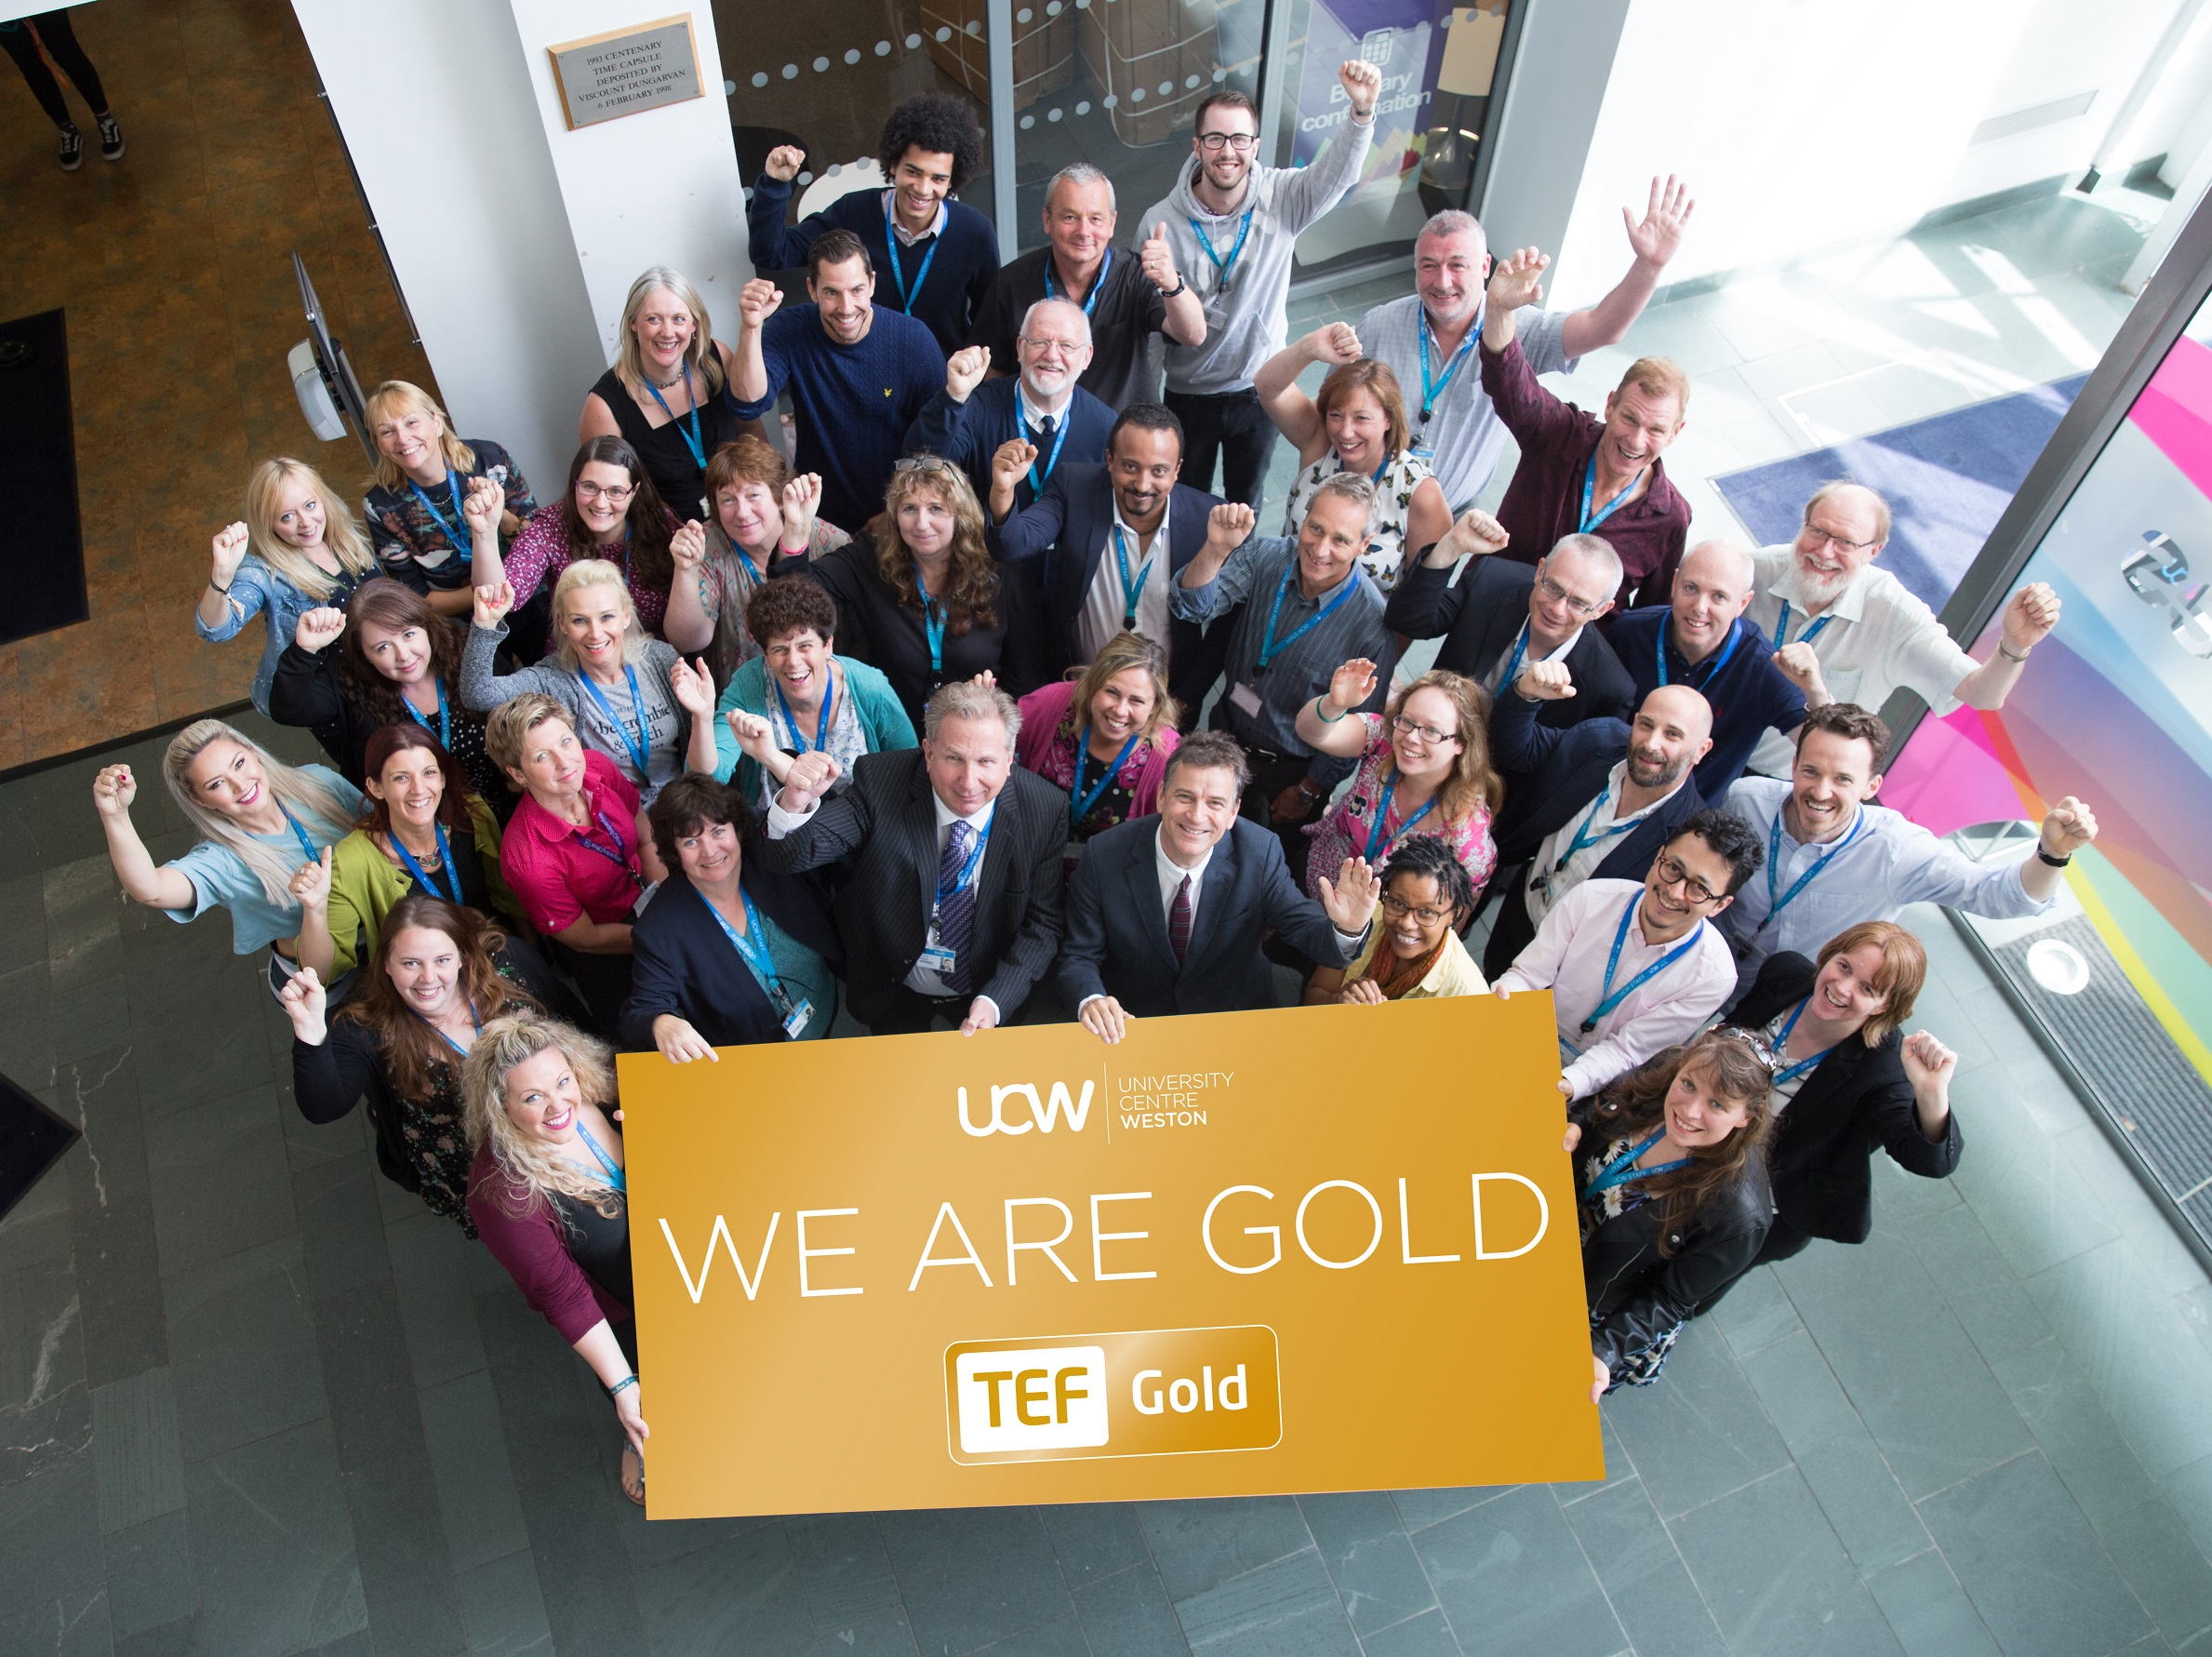 UCW gets Gold for quality of teaching